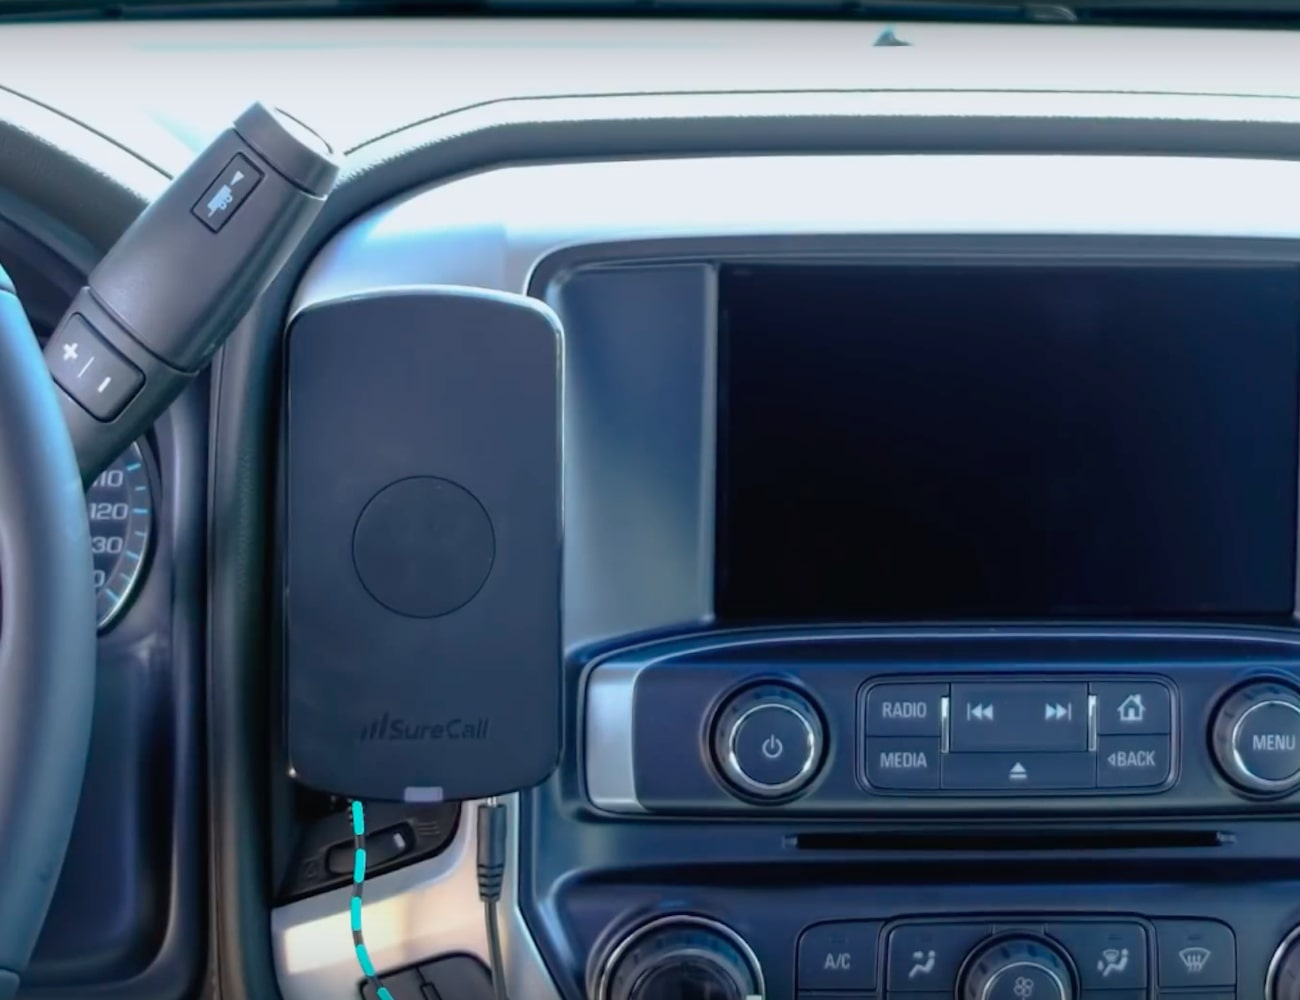 SureCall N-Range Vehicle Cell Phone Signal Booster enhances connectivity